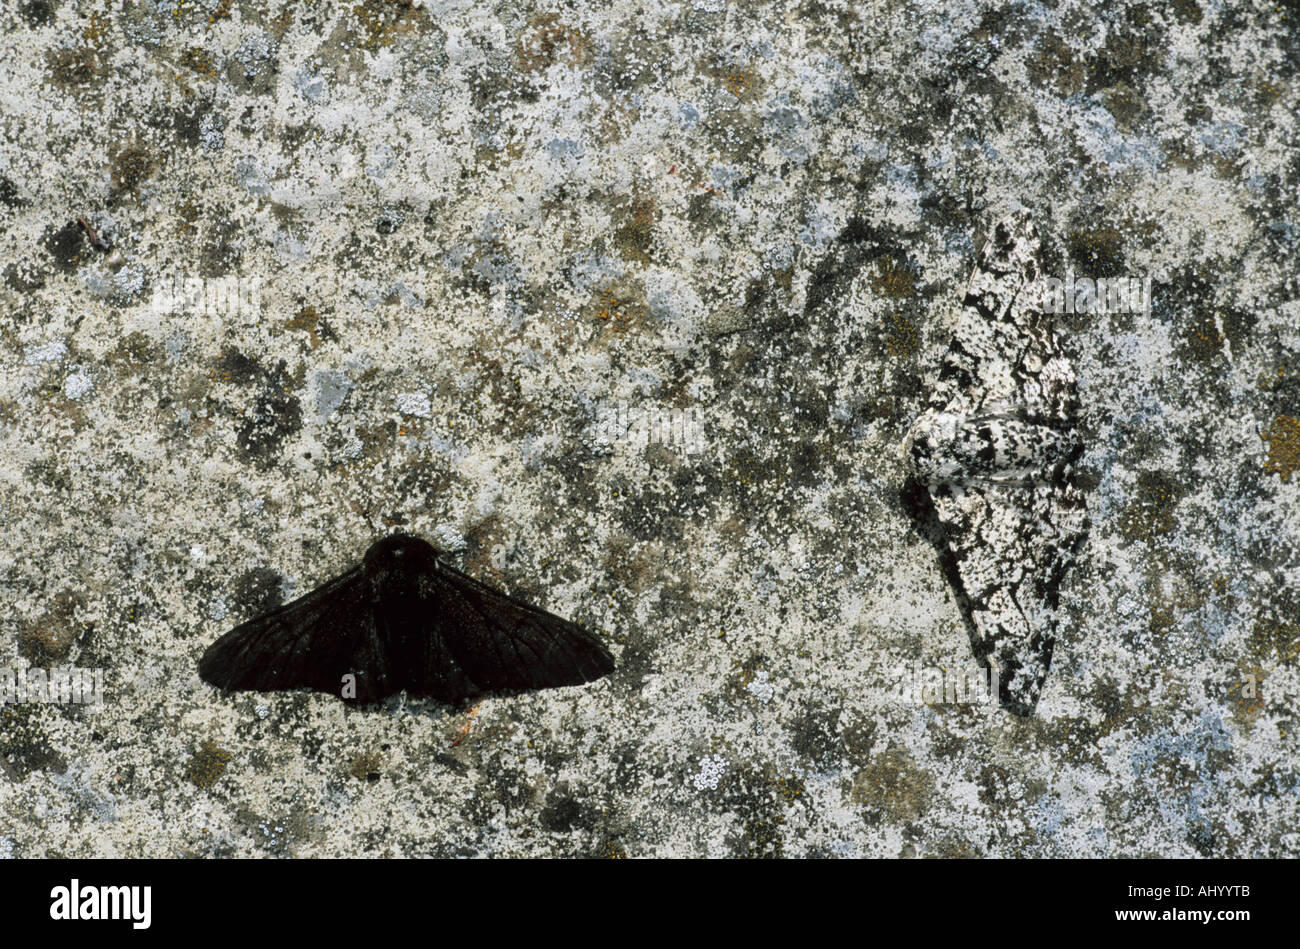 Peppered Moth Melanistic Normal Form On Pale Background